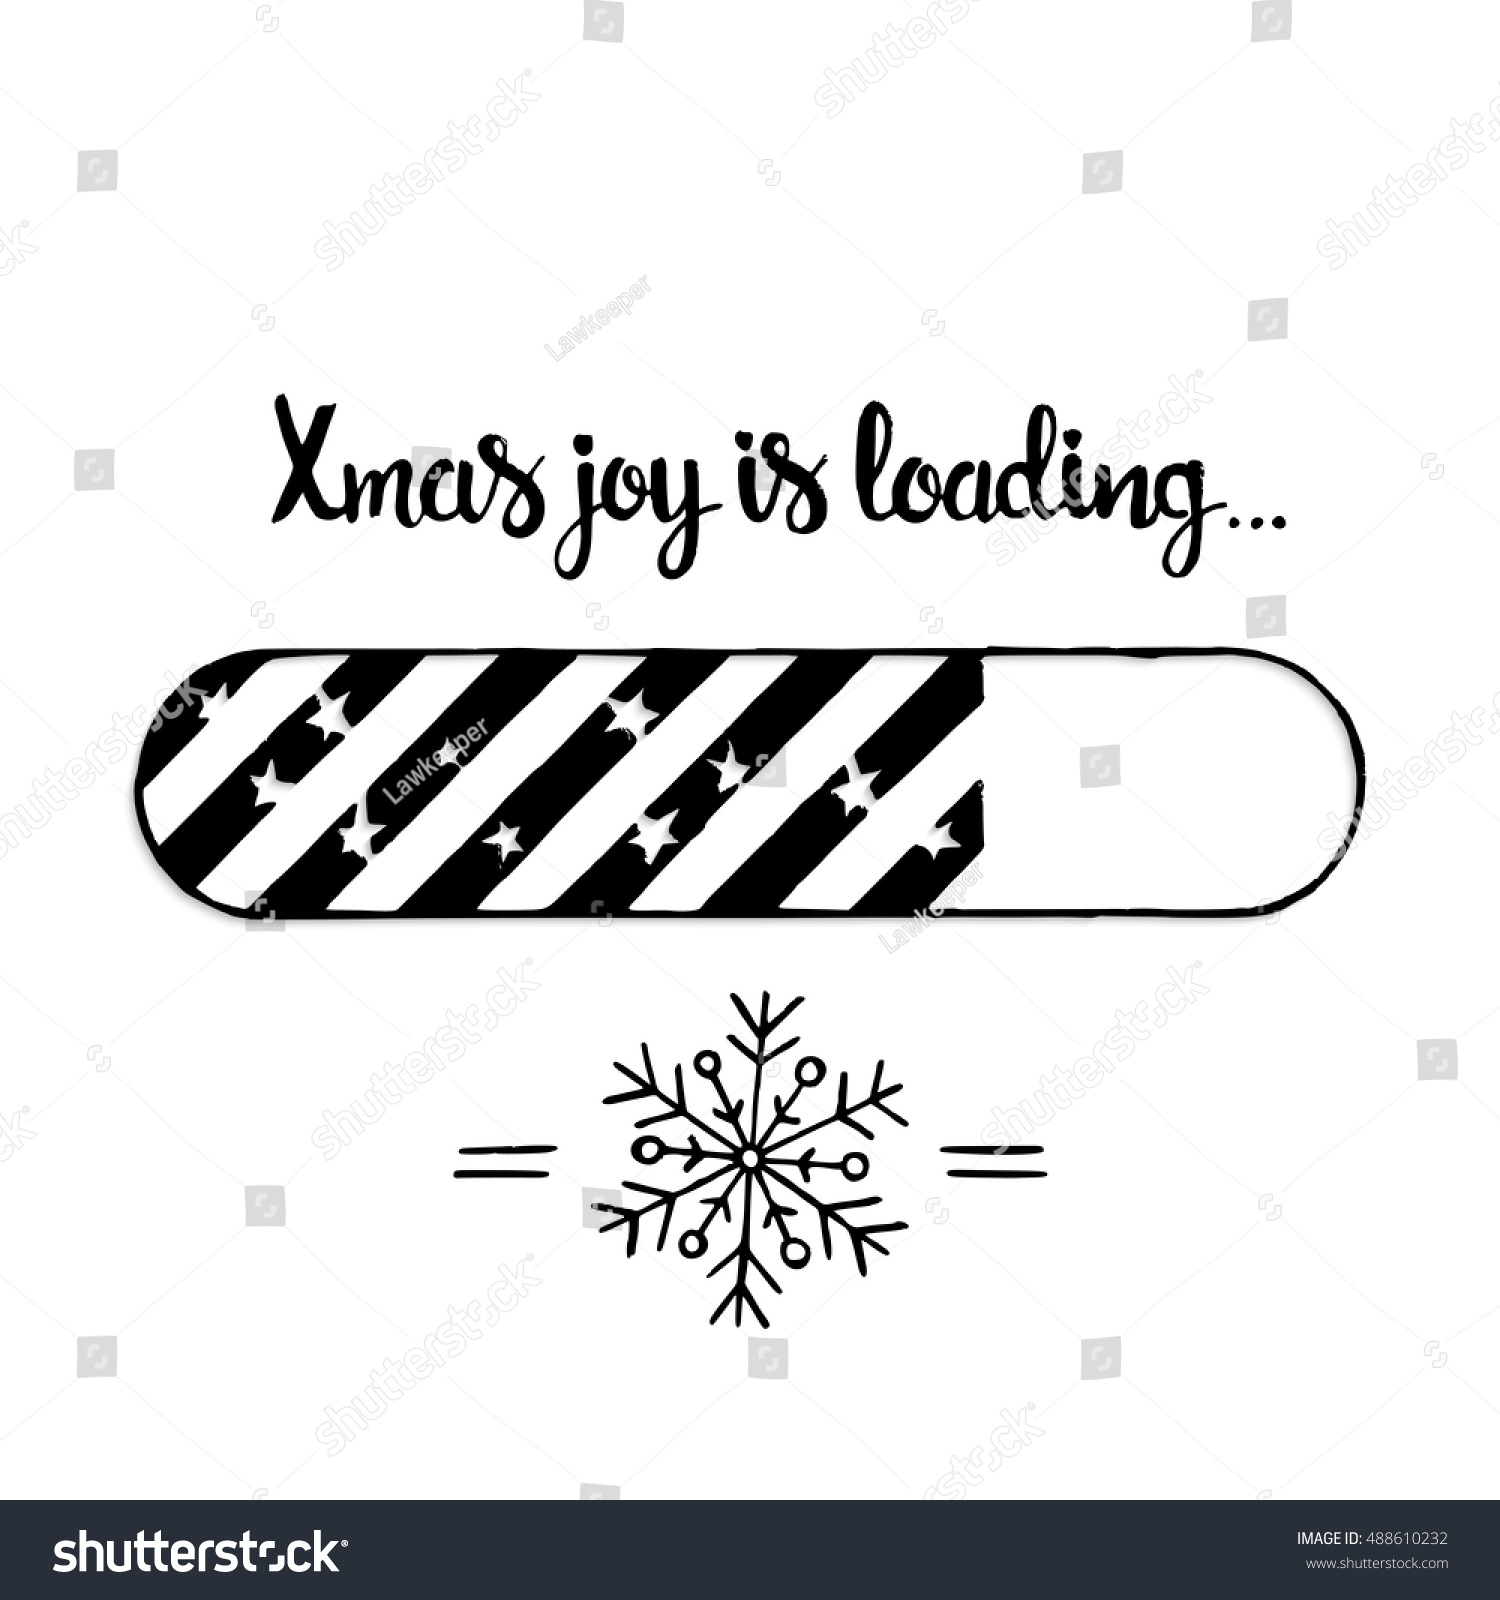 xmas joy is loading lettering modern vector hand drawn calligraphy with christmas snowflake and loading